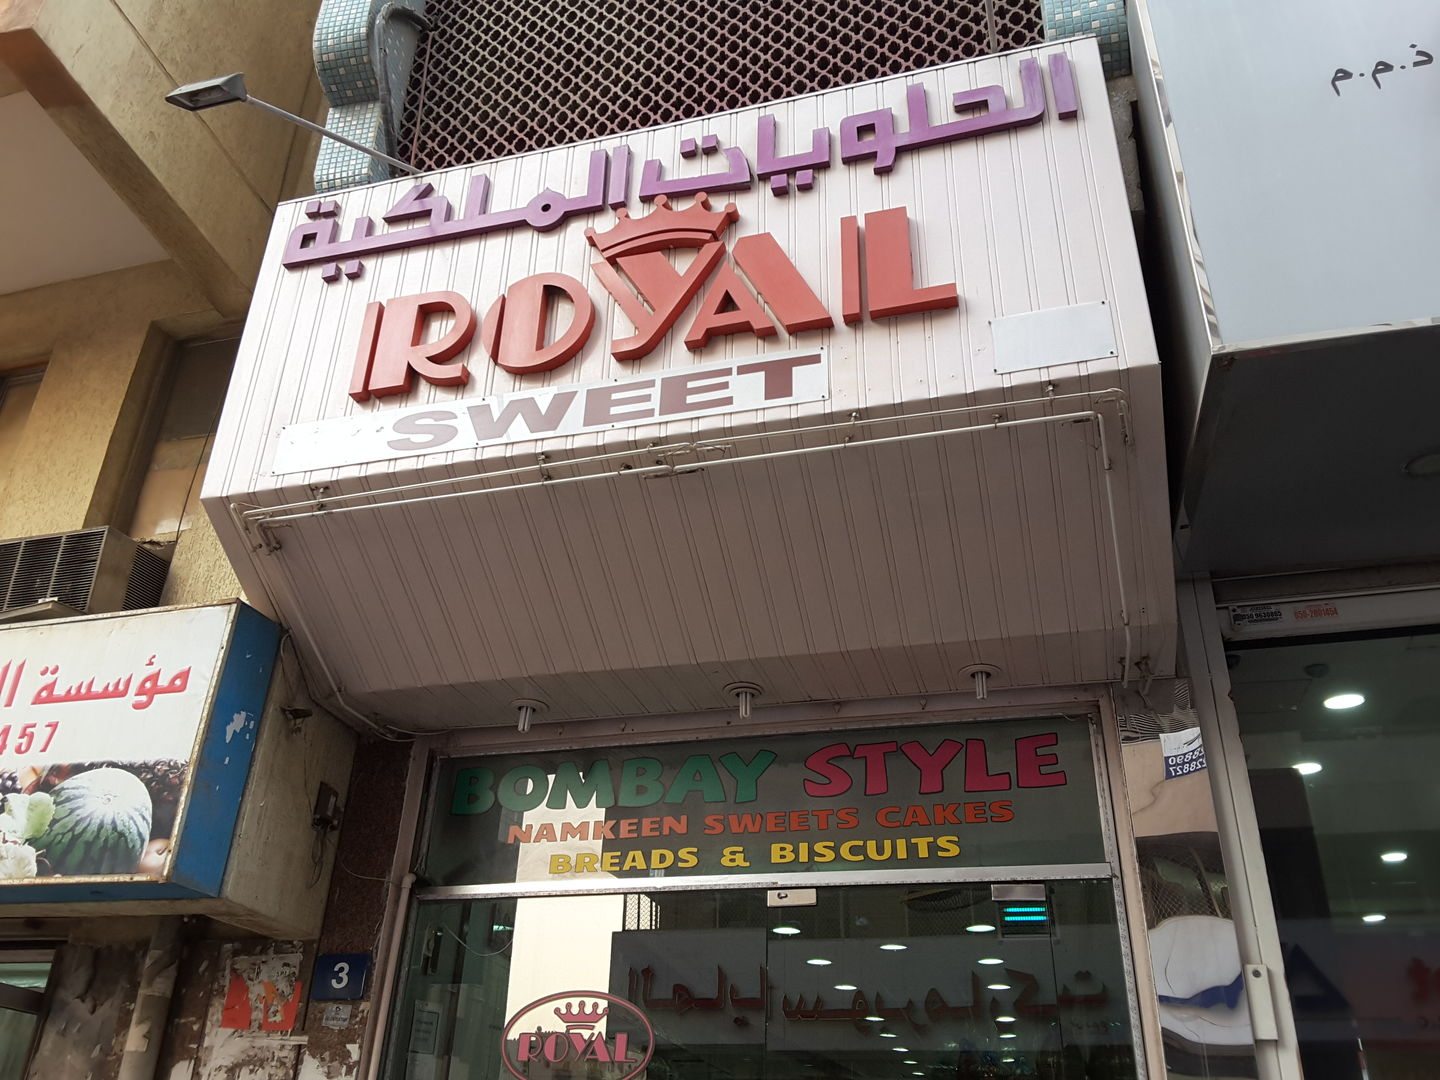 HiDubai-business-royal-sweets-food-beverage-bakeries-desserts-sweets-al-fahidi-al-souq-al-kabeer-dubai-2